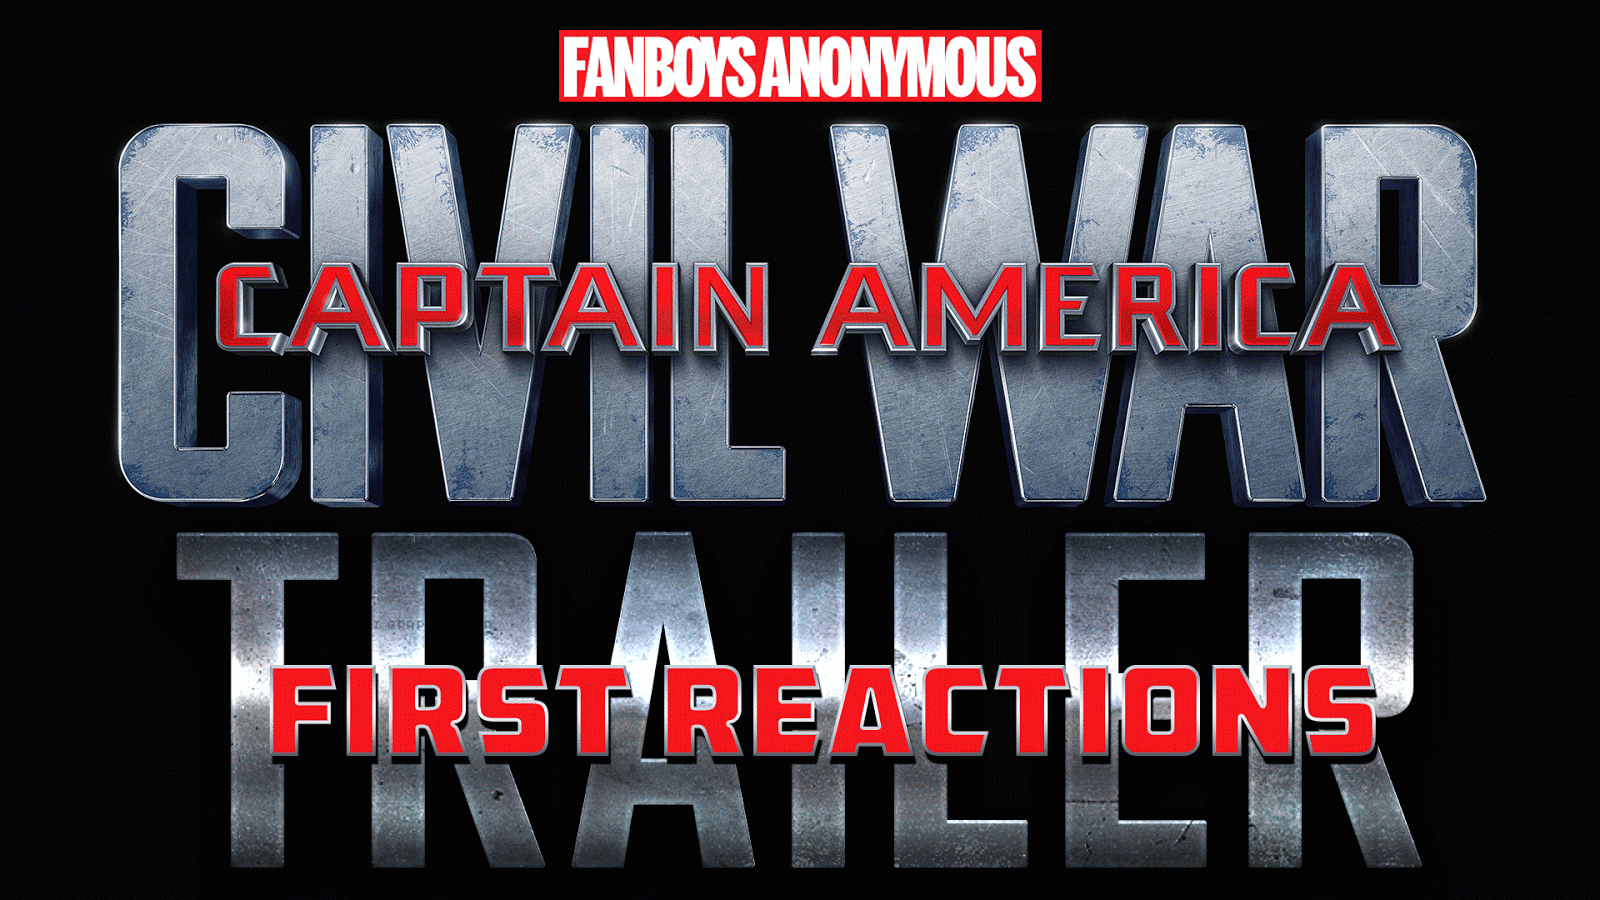 reaction to trailer for Captain America: Civil War